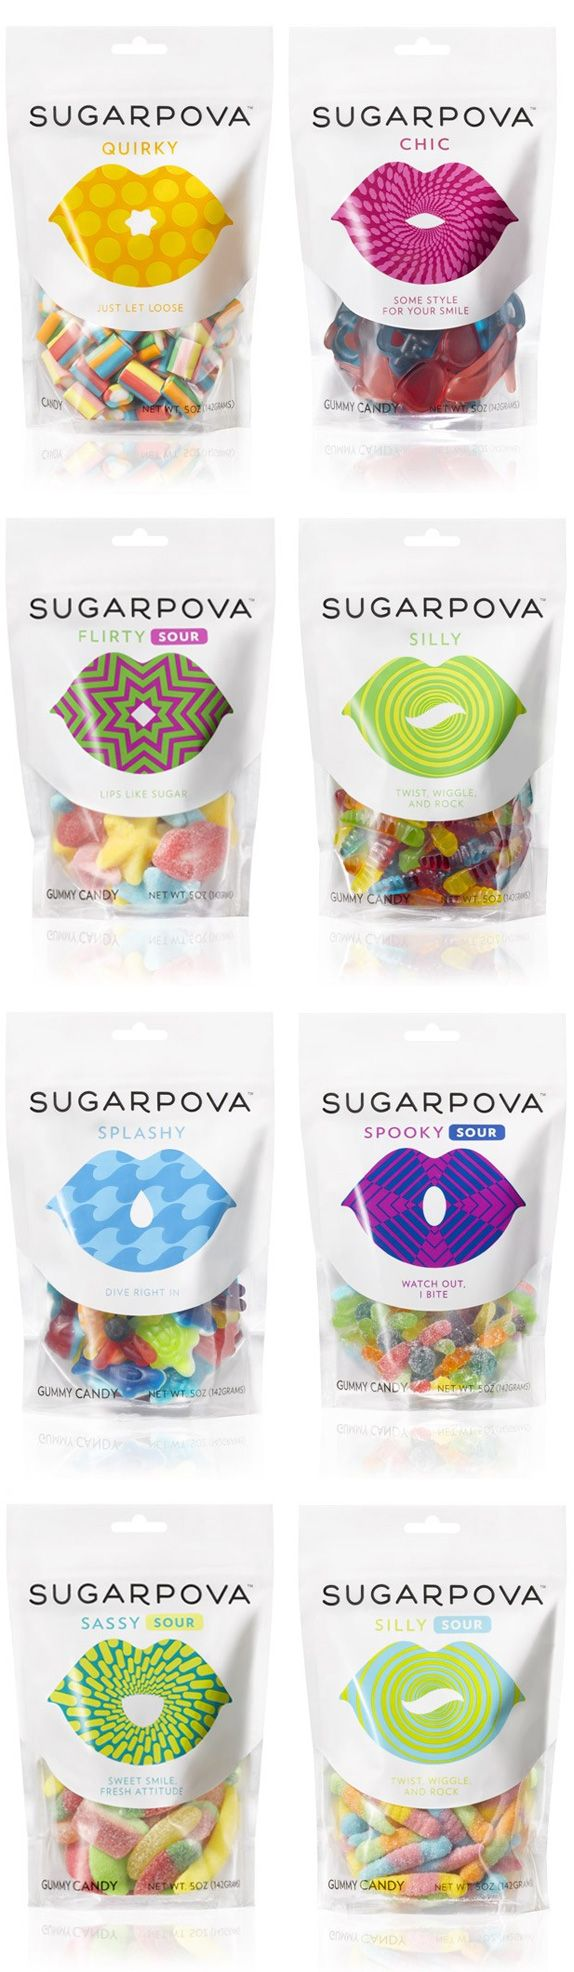 Sugarpova Candy Packaging | Restaurant branding, marketing and other notes on various design topics